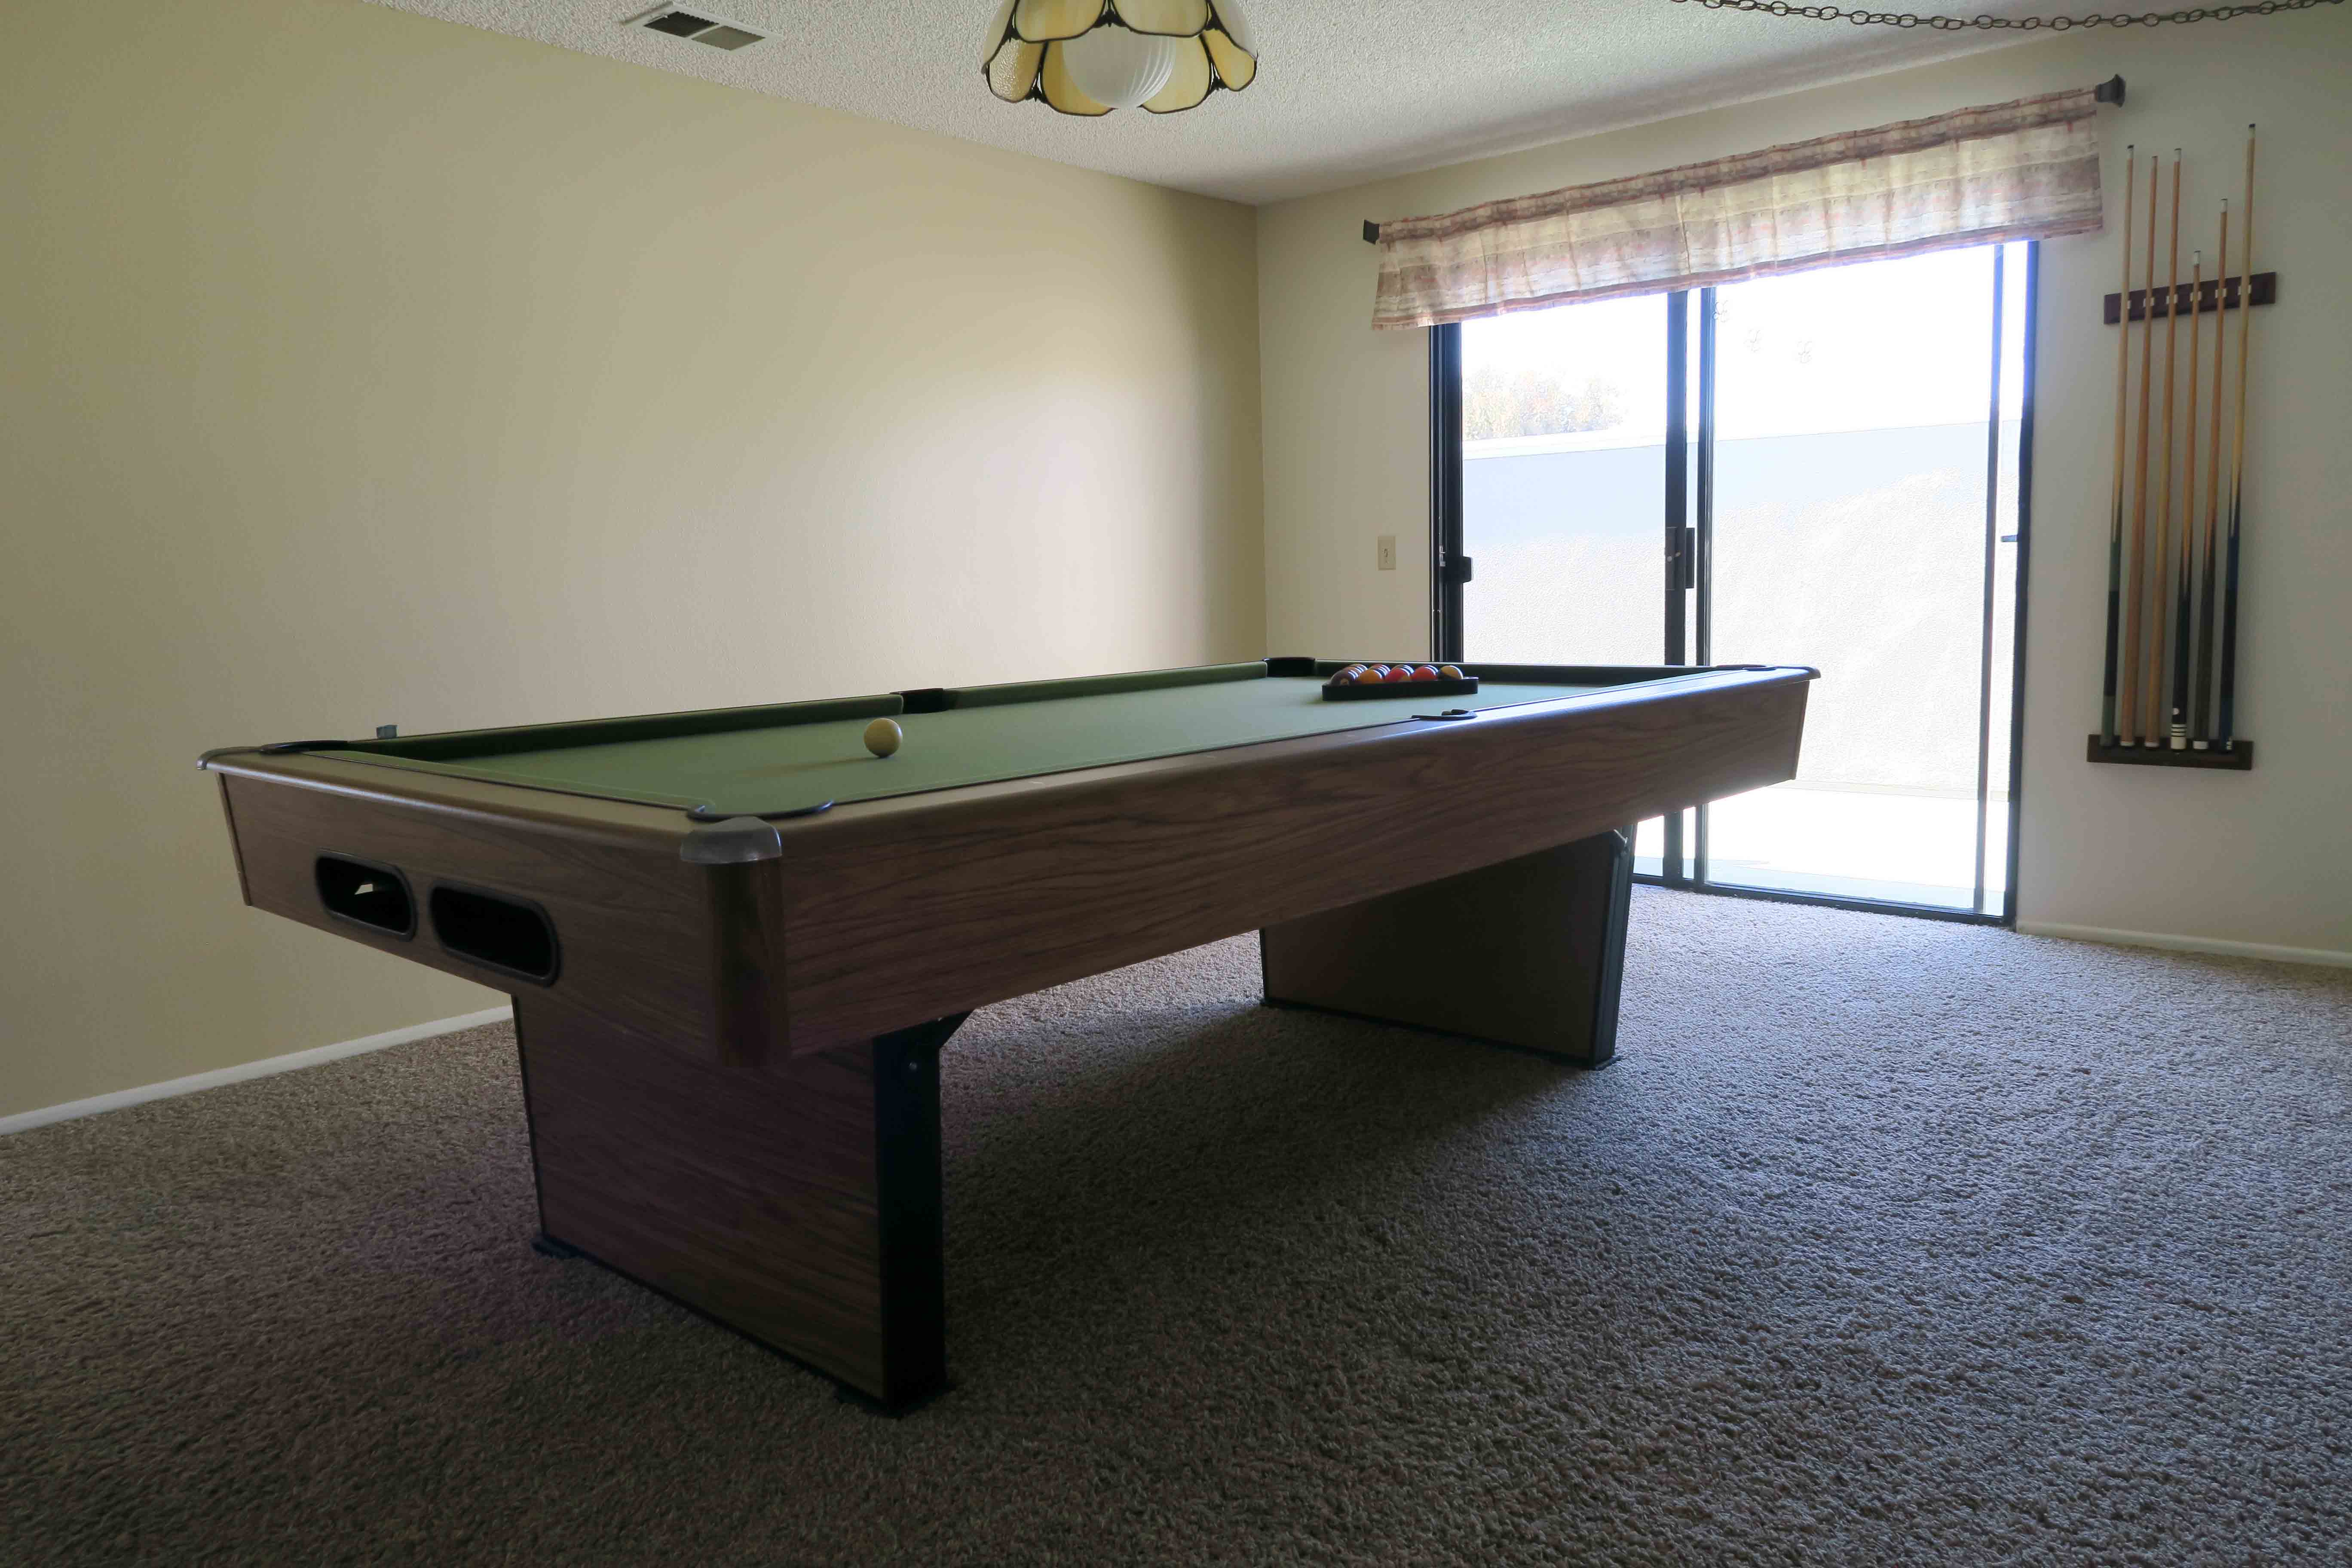 1841 Adelaide Ct, Oxnard CA 93035 Game Room View  2